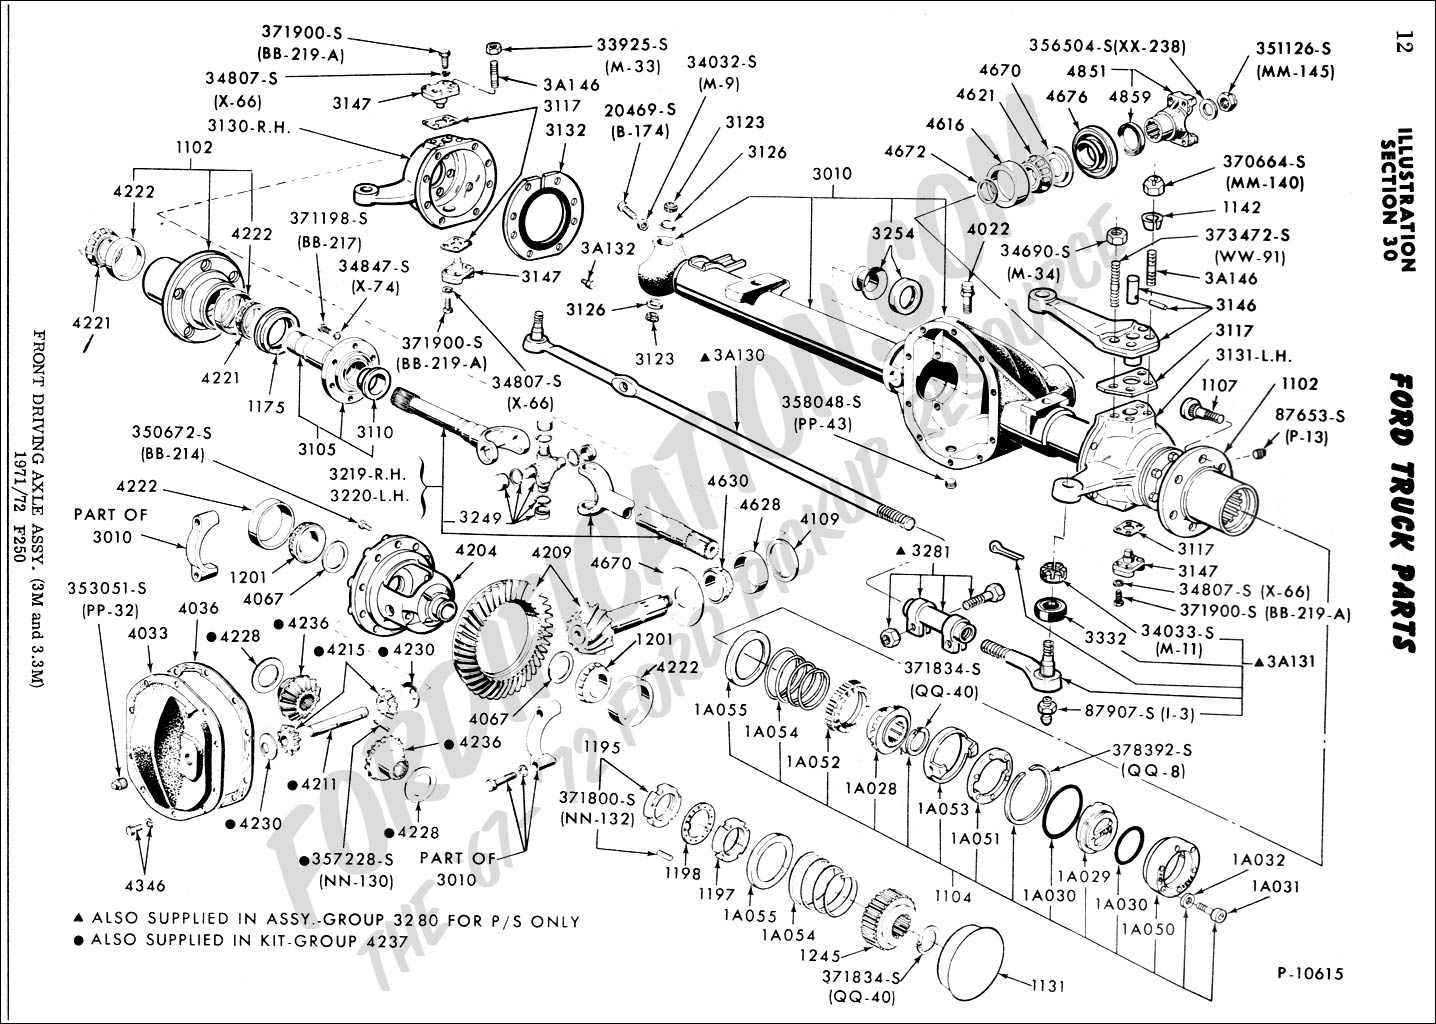 99 F150 Suspension Diagram Great Installation Of Wiring 2001 Ford F 150 4wd F250 Front Diagrams Rh 19 Shareplm De 1999